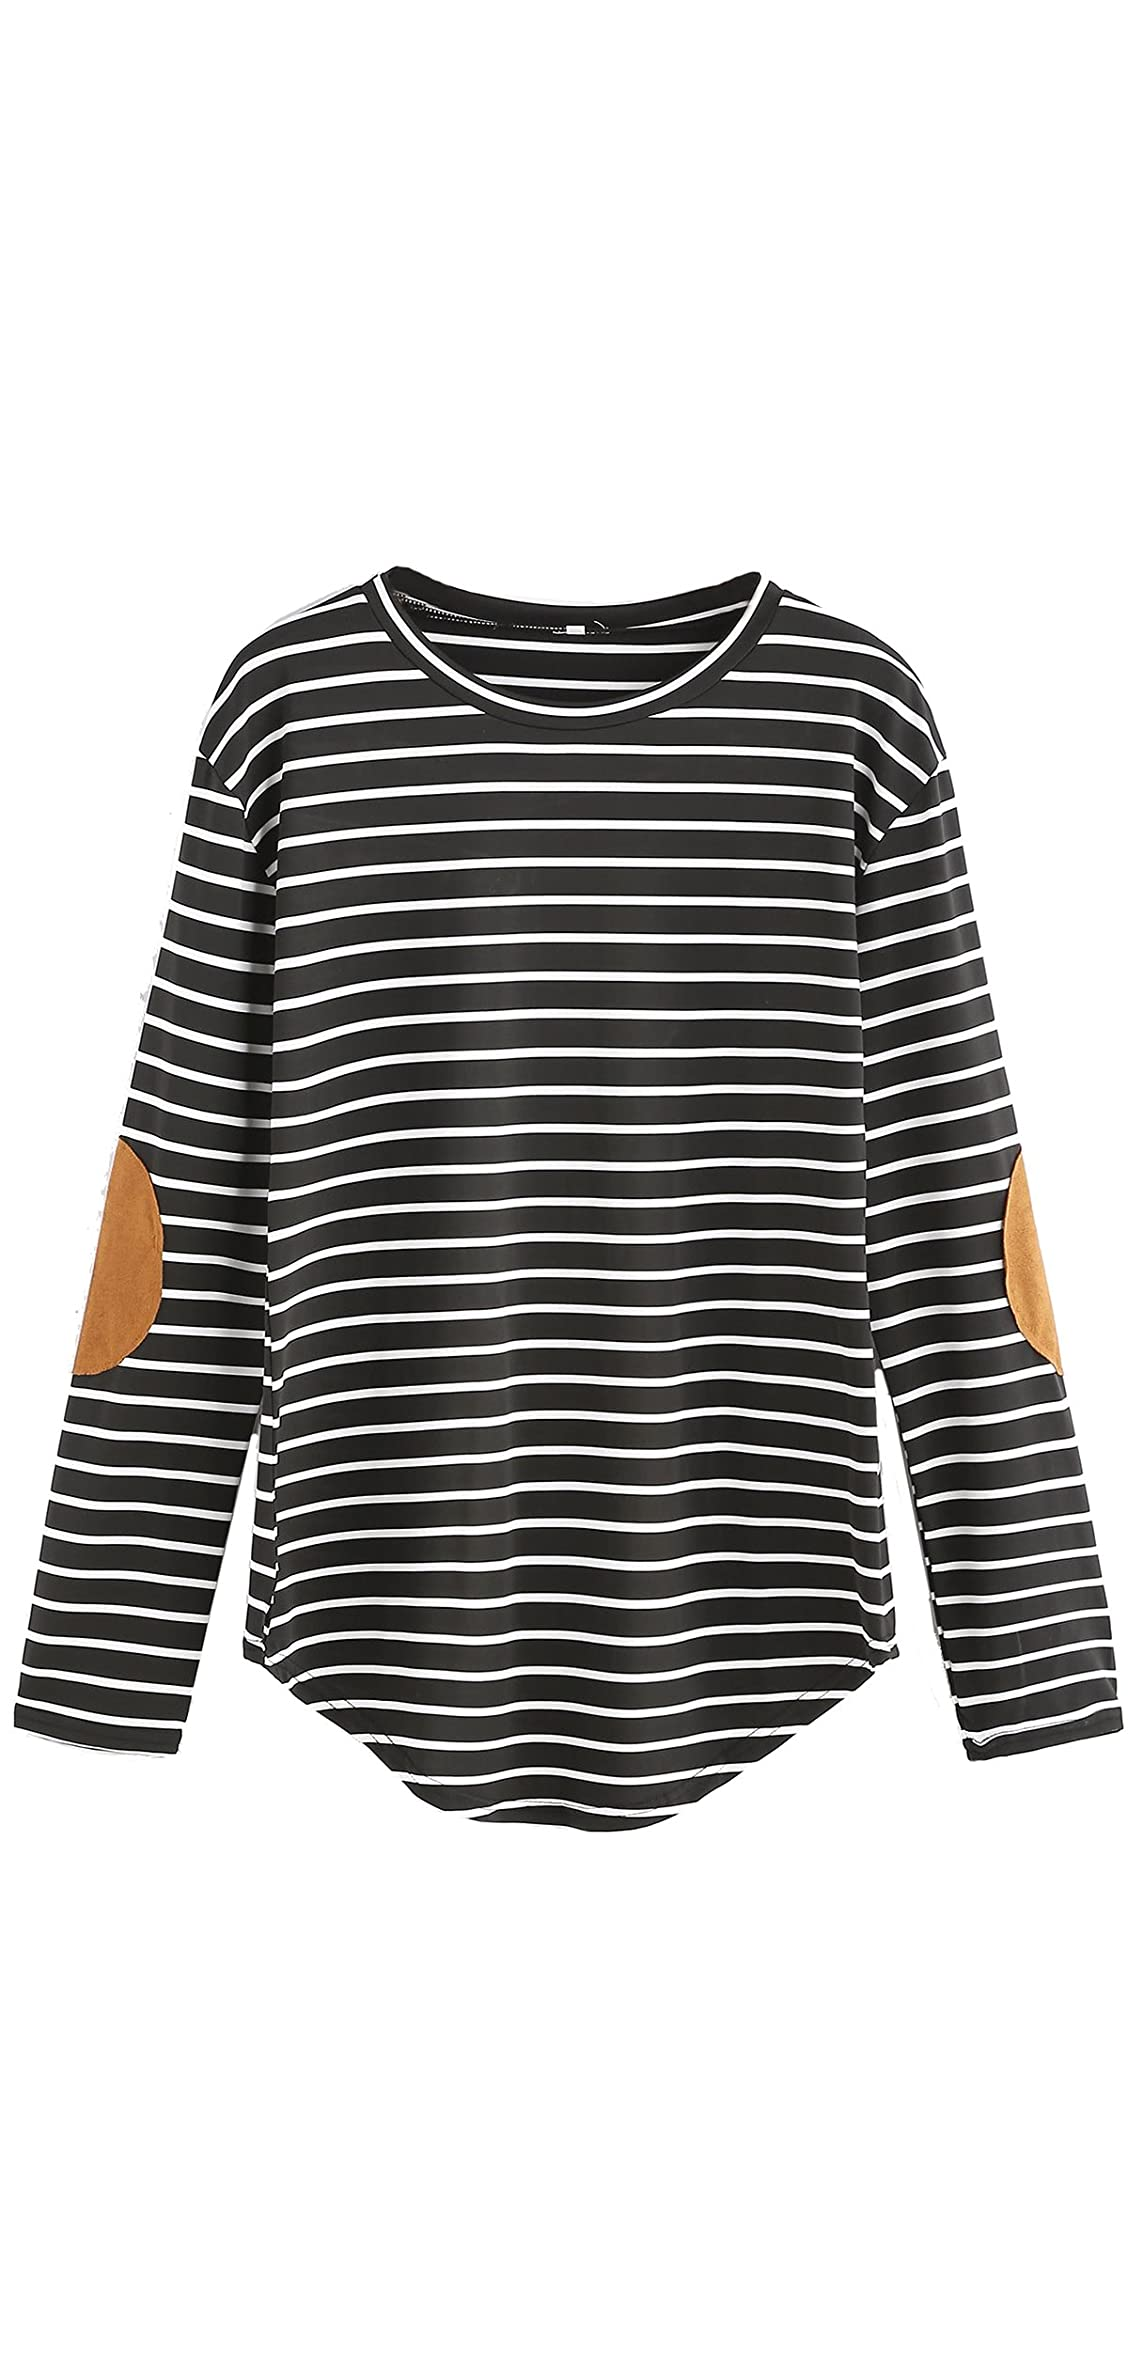 Women's Elbow Patch Striped High Low Top T-shirt